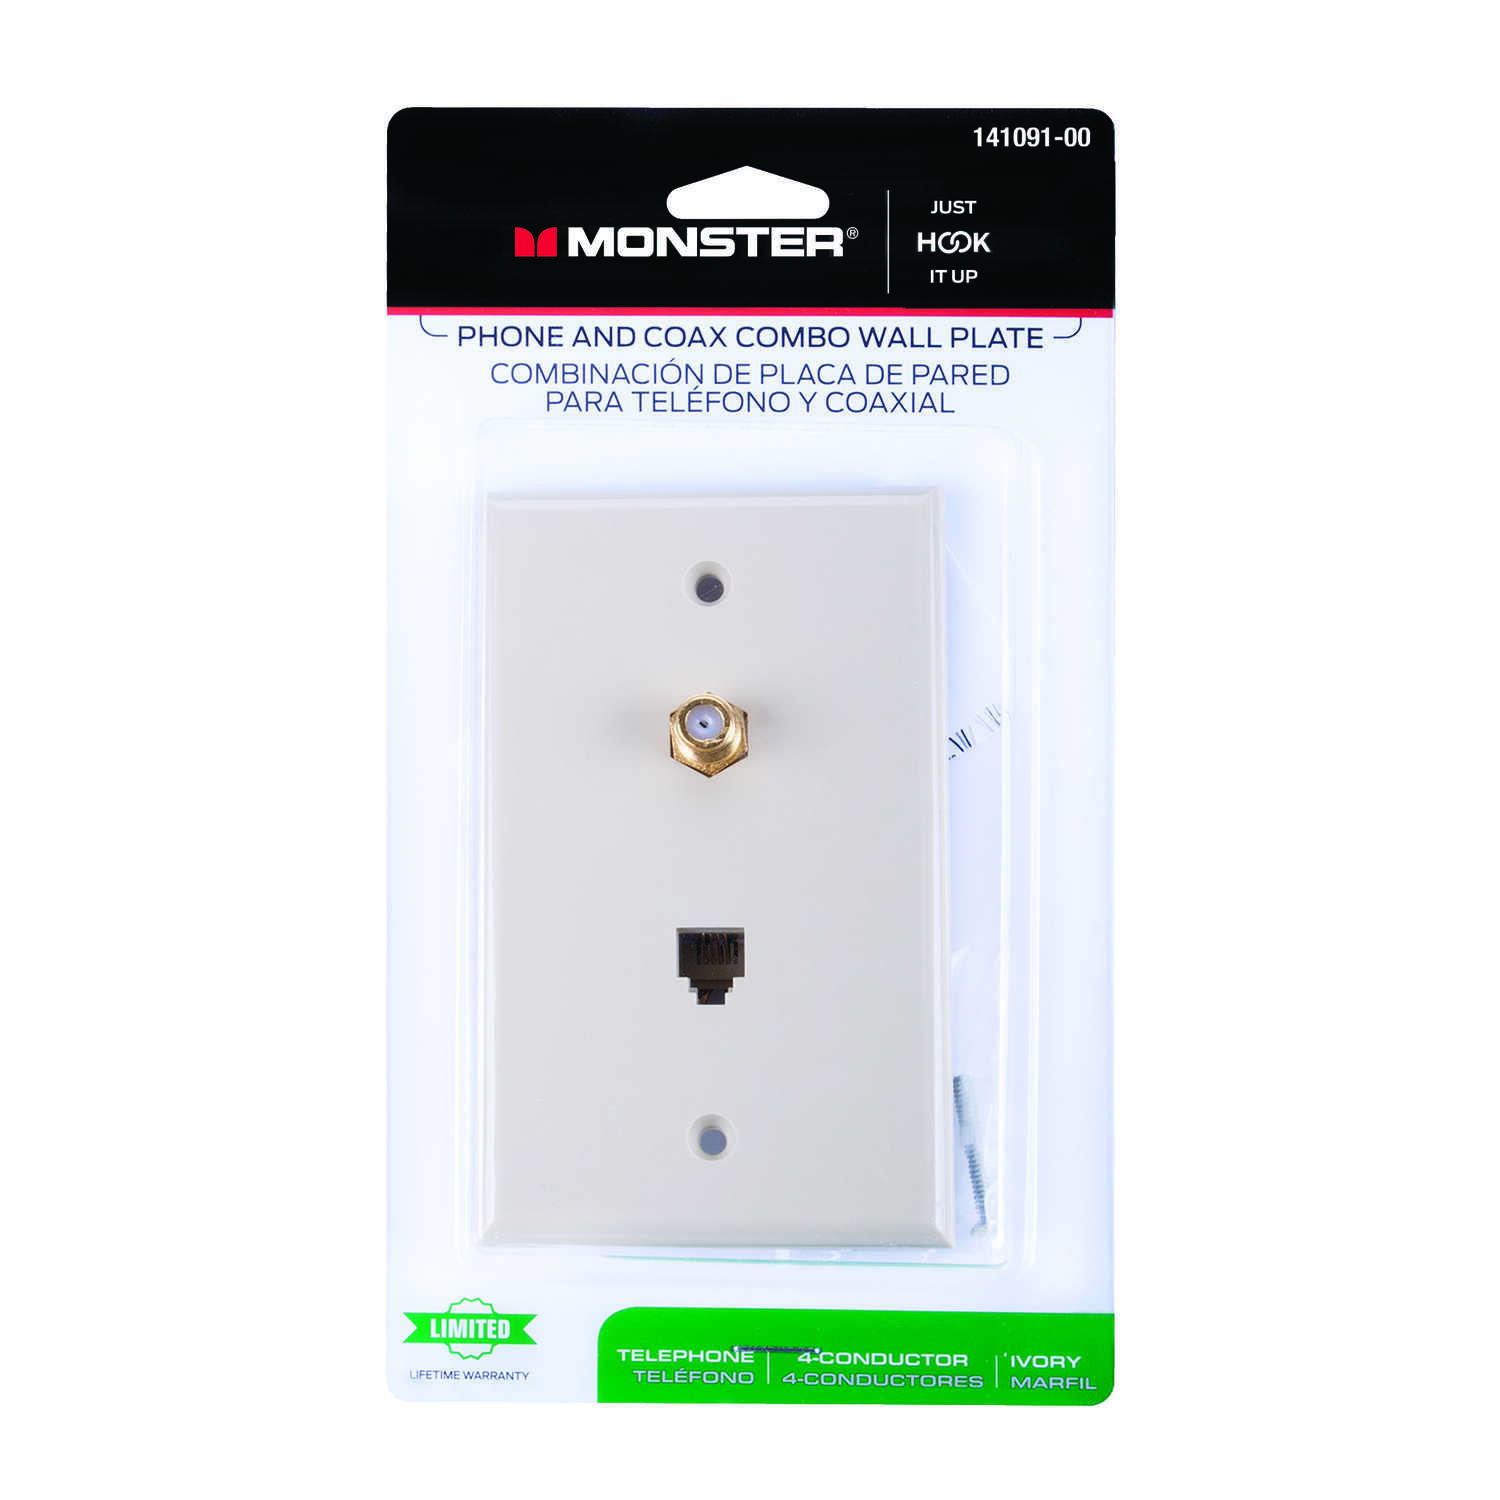 Monster Cable  Just Hook It Up  Ivory  1 gang Coaxial  Wall Plate  1 each Plastic